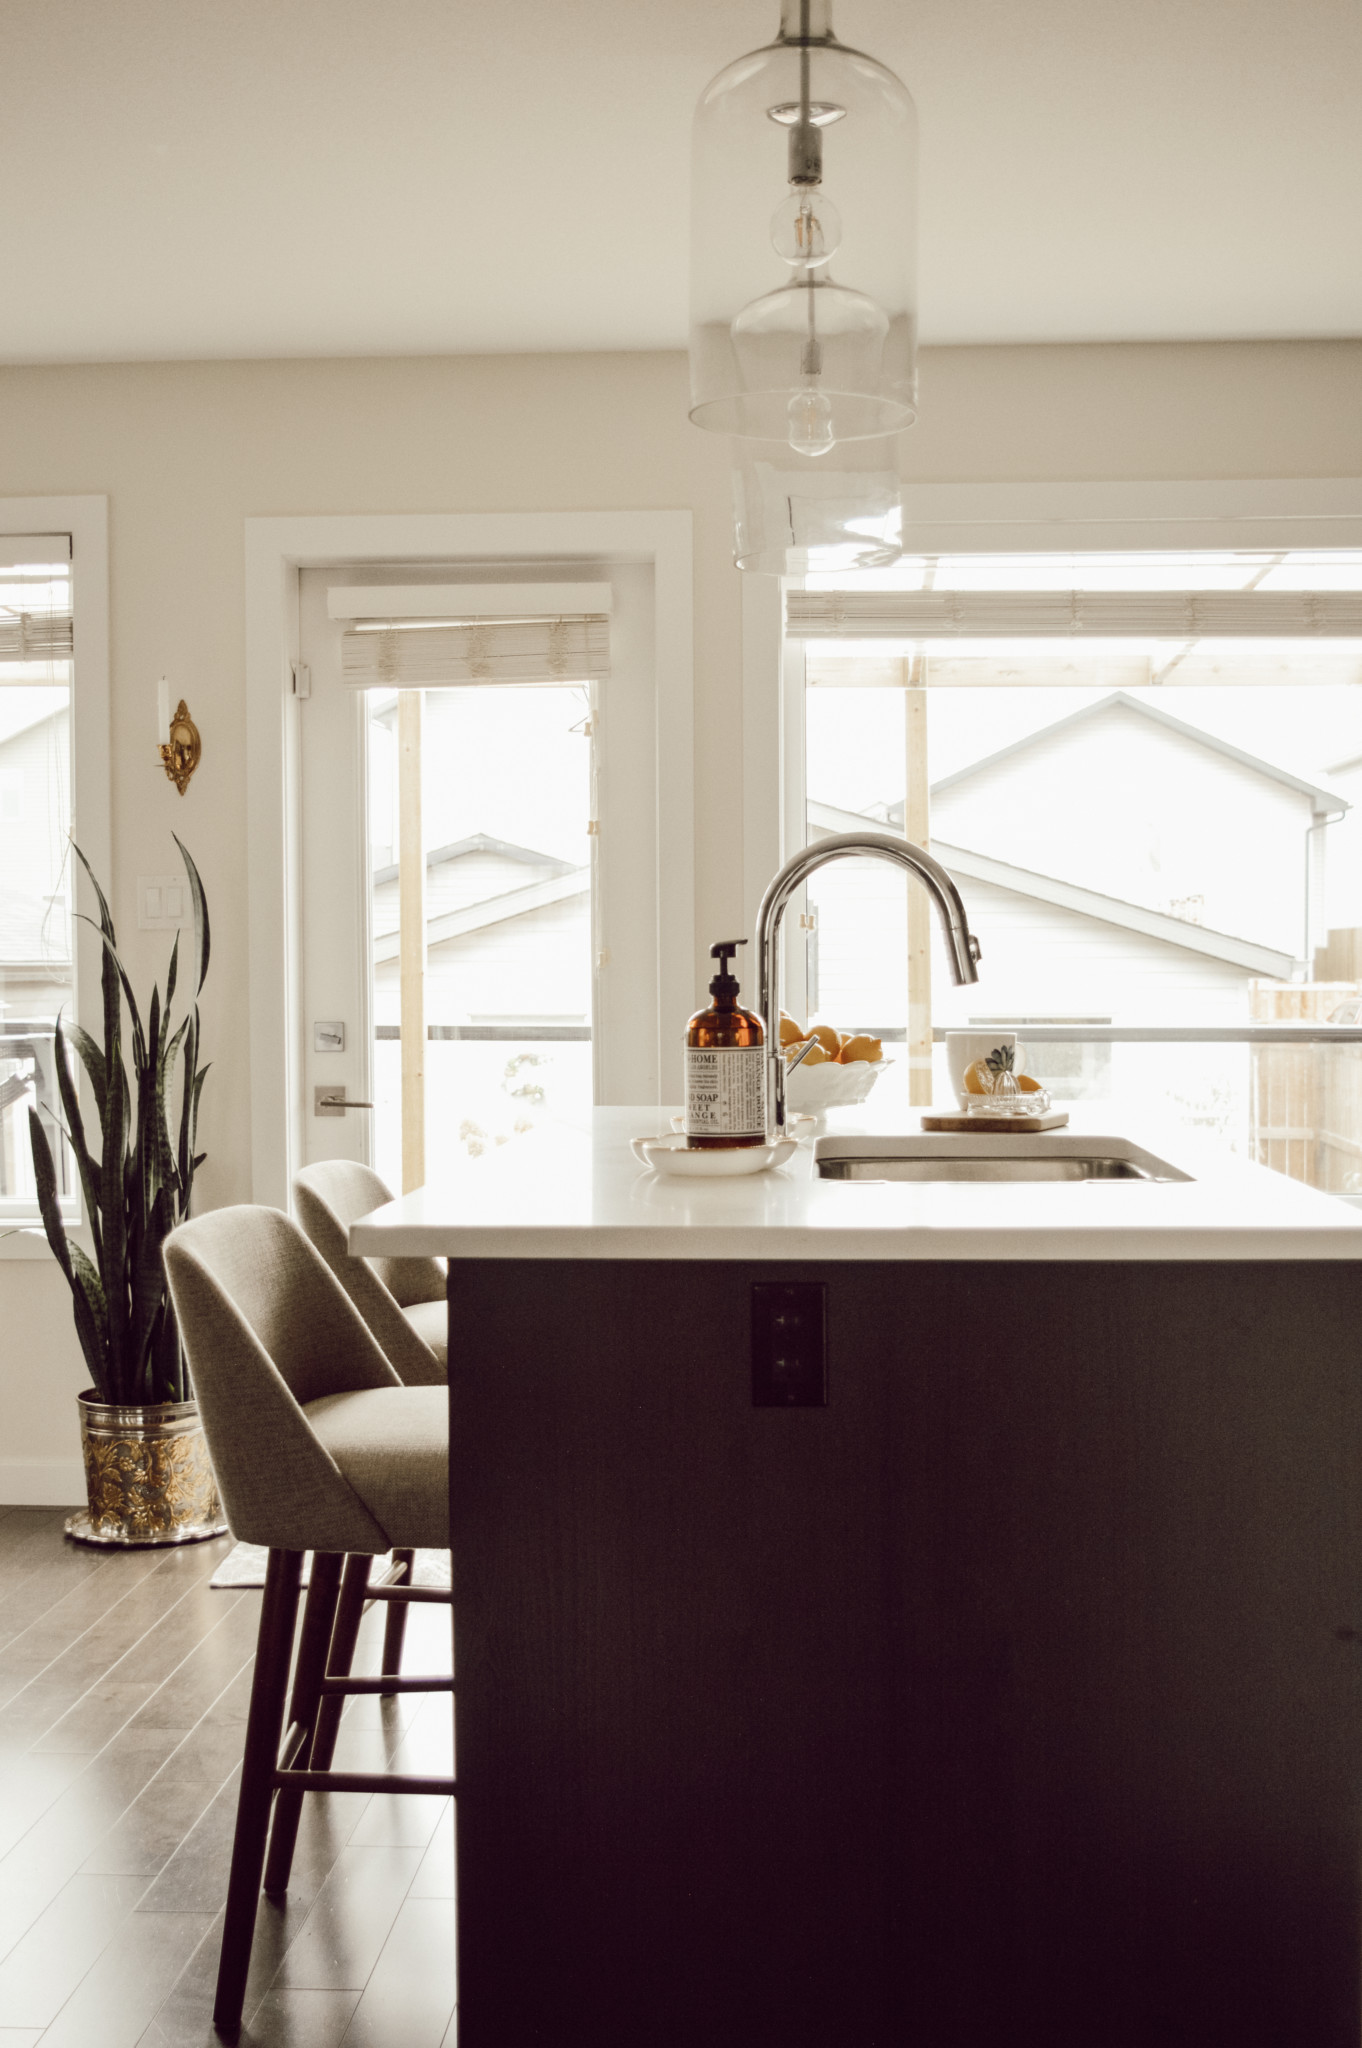 Why A View Of The Kitchen From The Entryway Is Considered Bad Feng Shui Feng Shui By Bridget